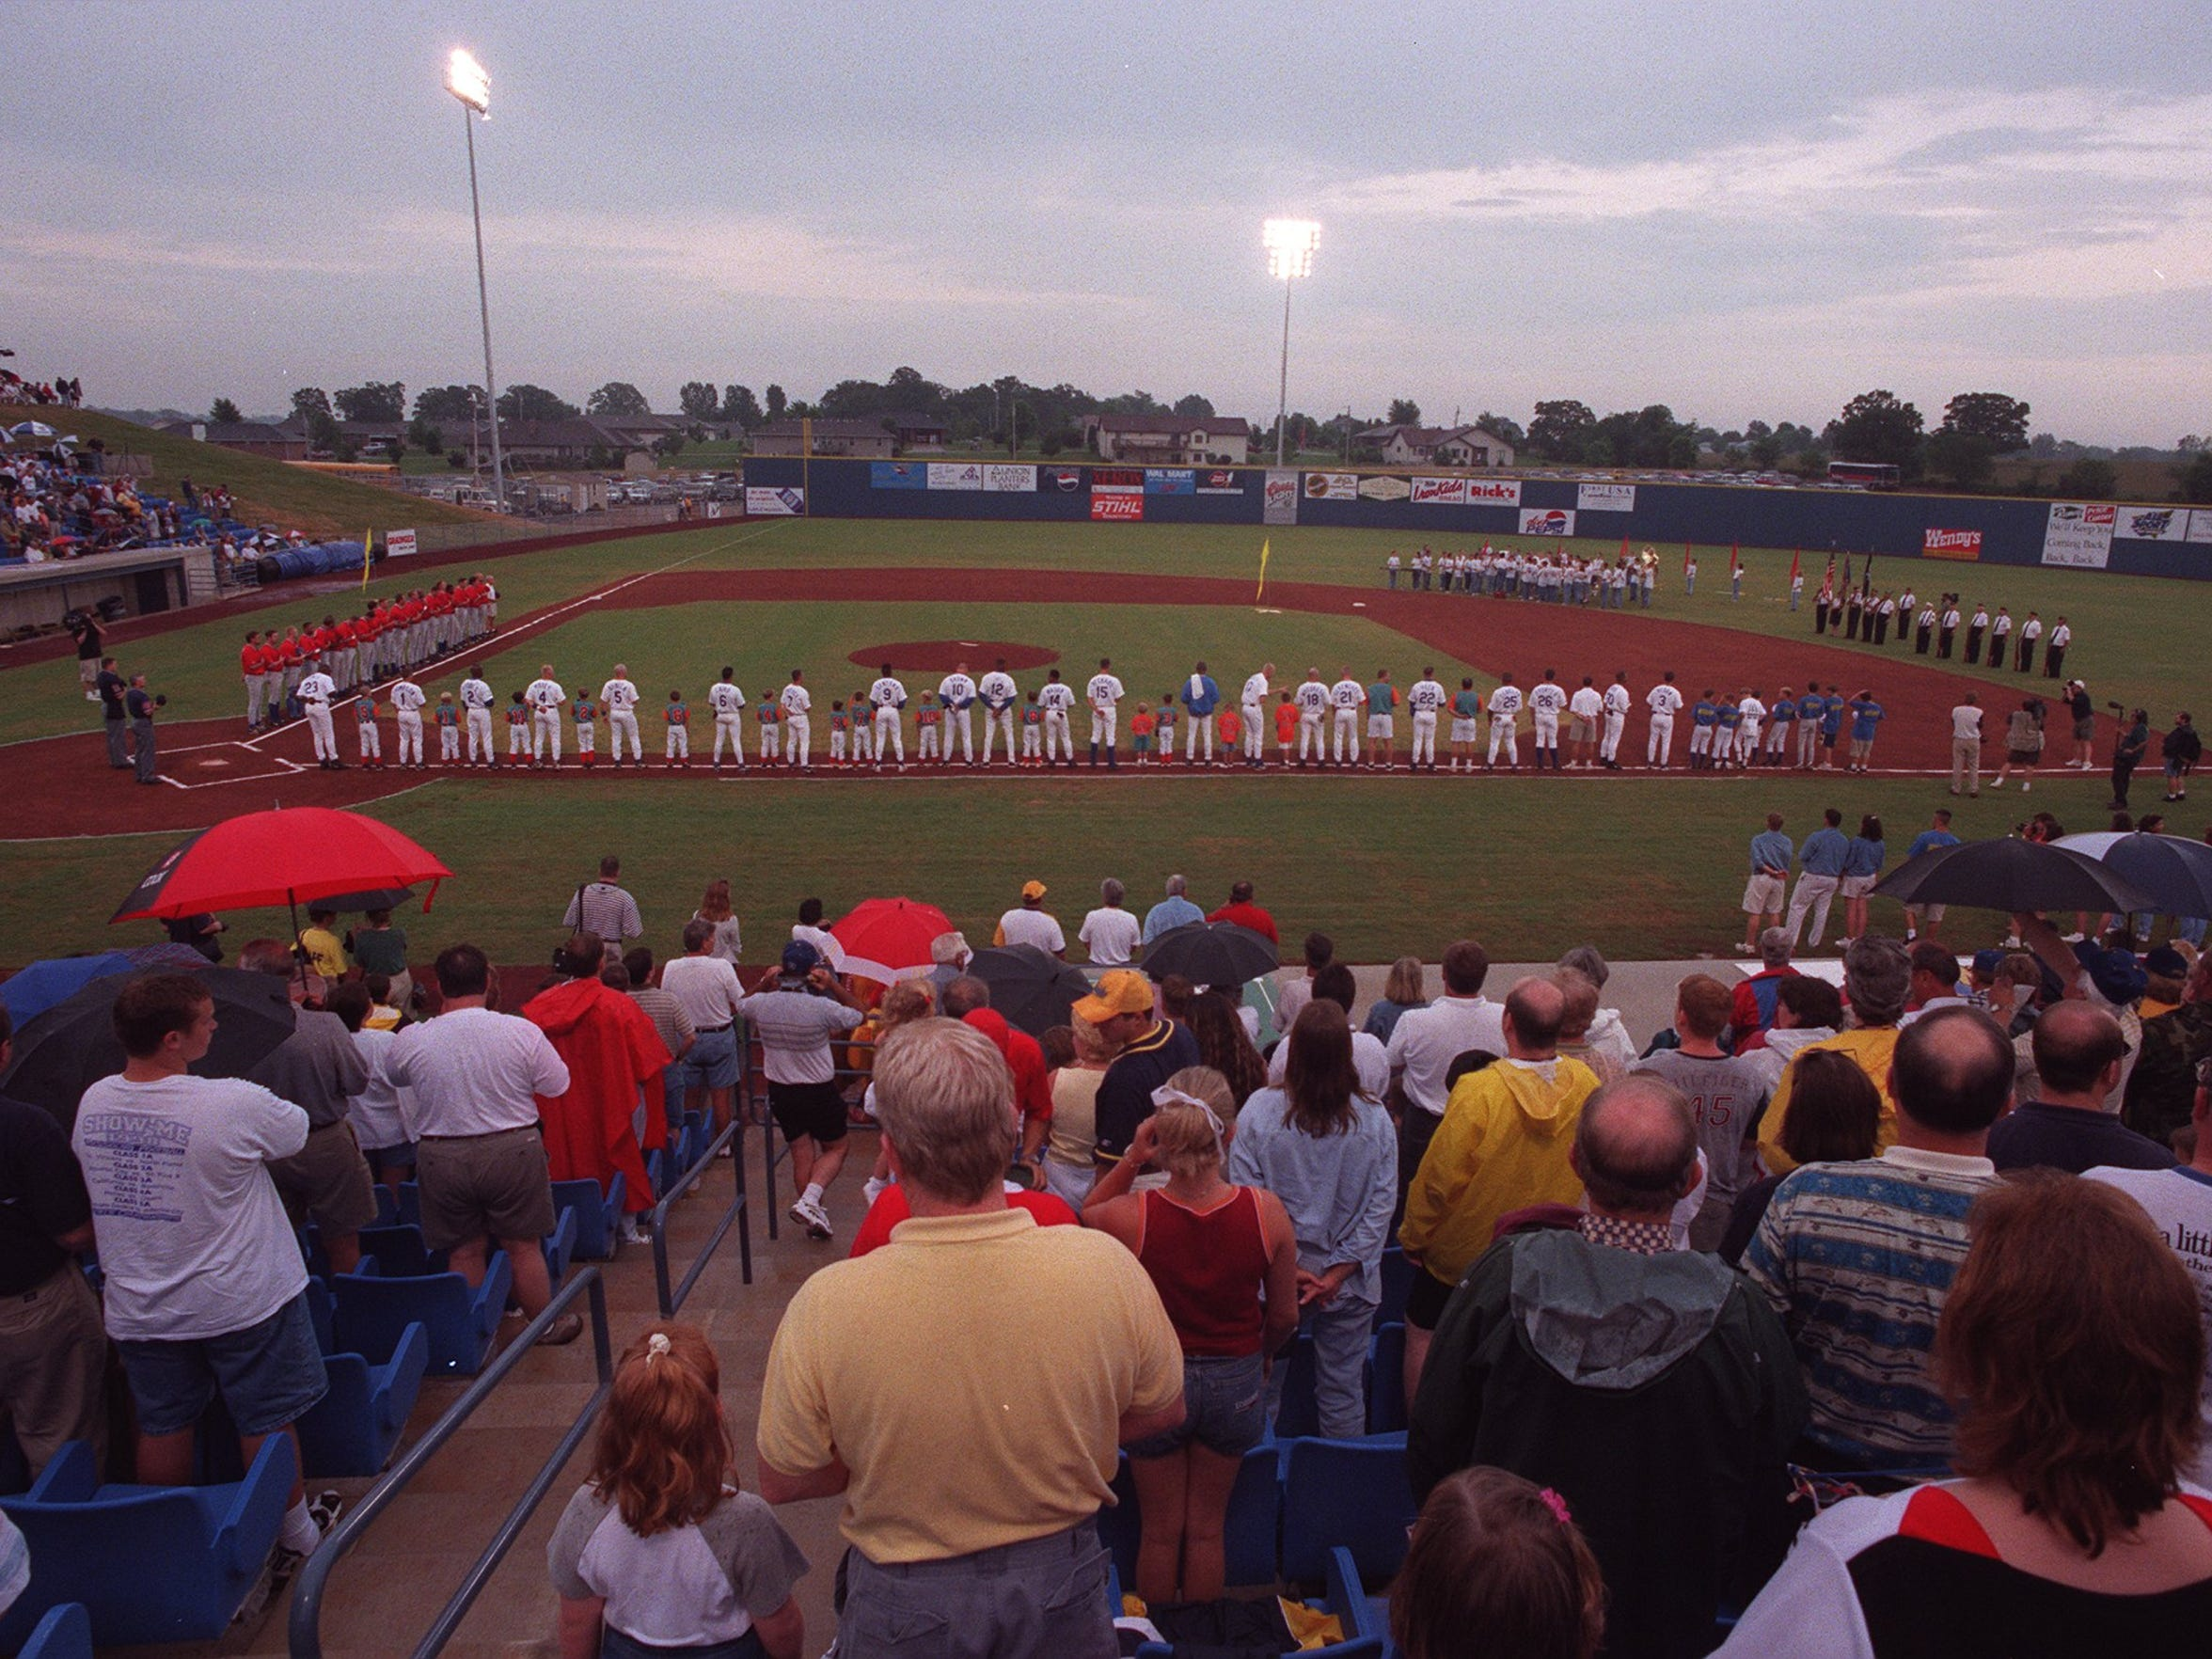 For the first time in more than 50 years minor league baseball returned to the Ozarks as the crowd at the Ozark Mountain Ducks stadium in Ozark, MO., stand for the National Anthem in 1999.